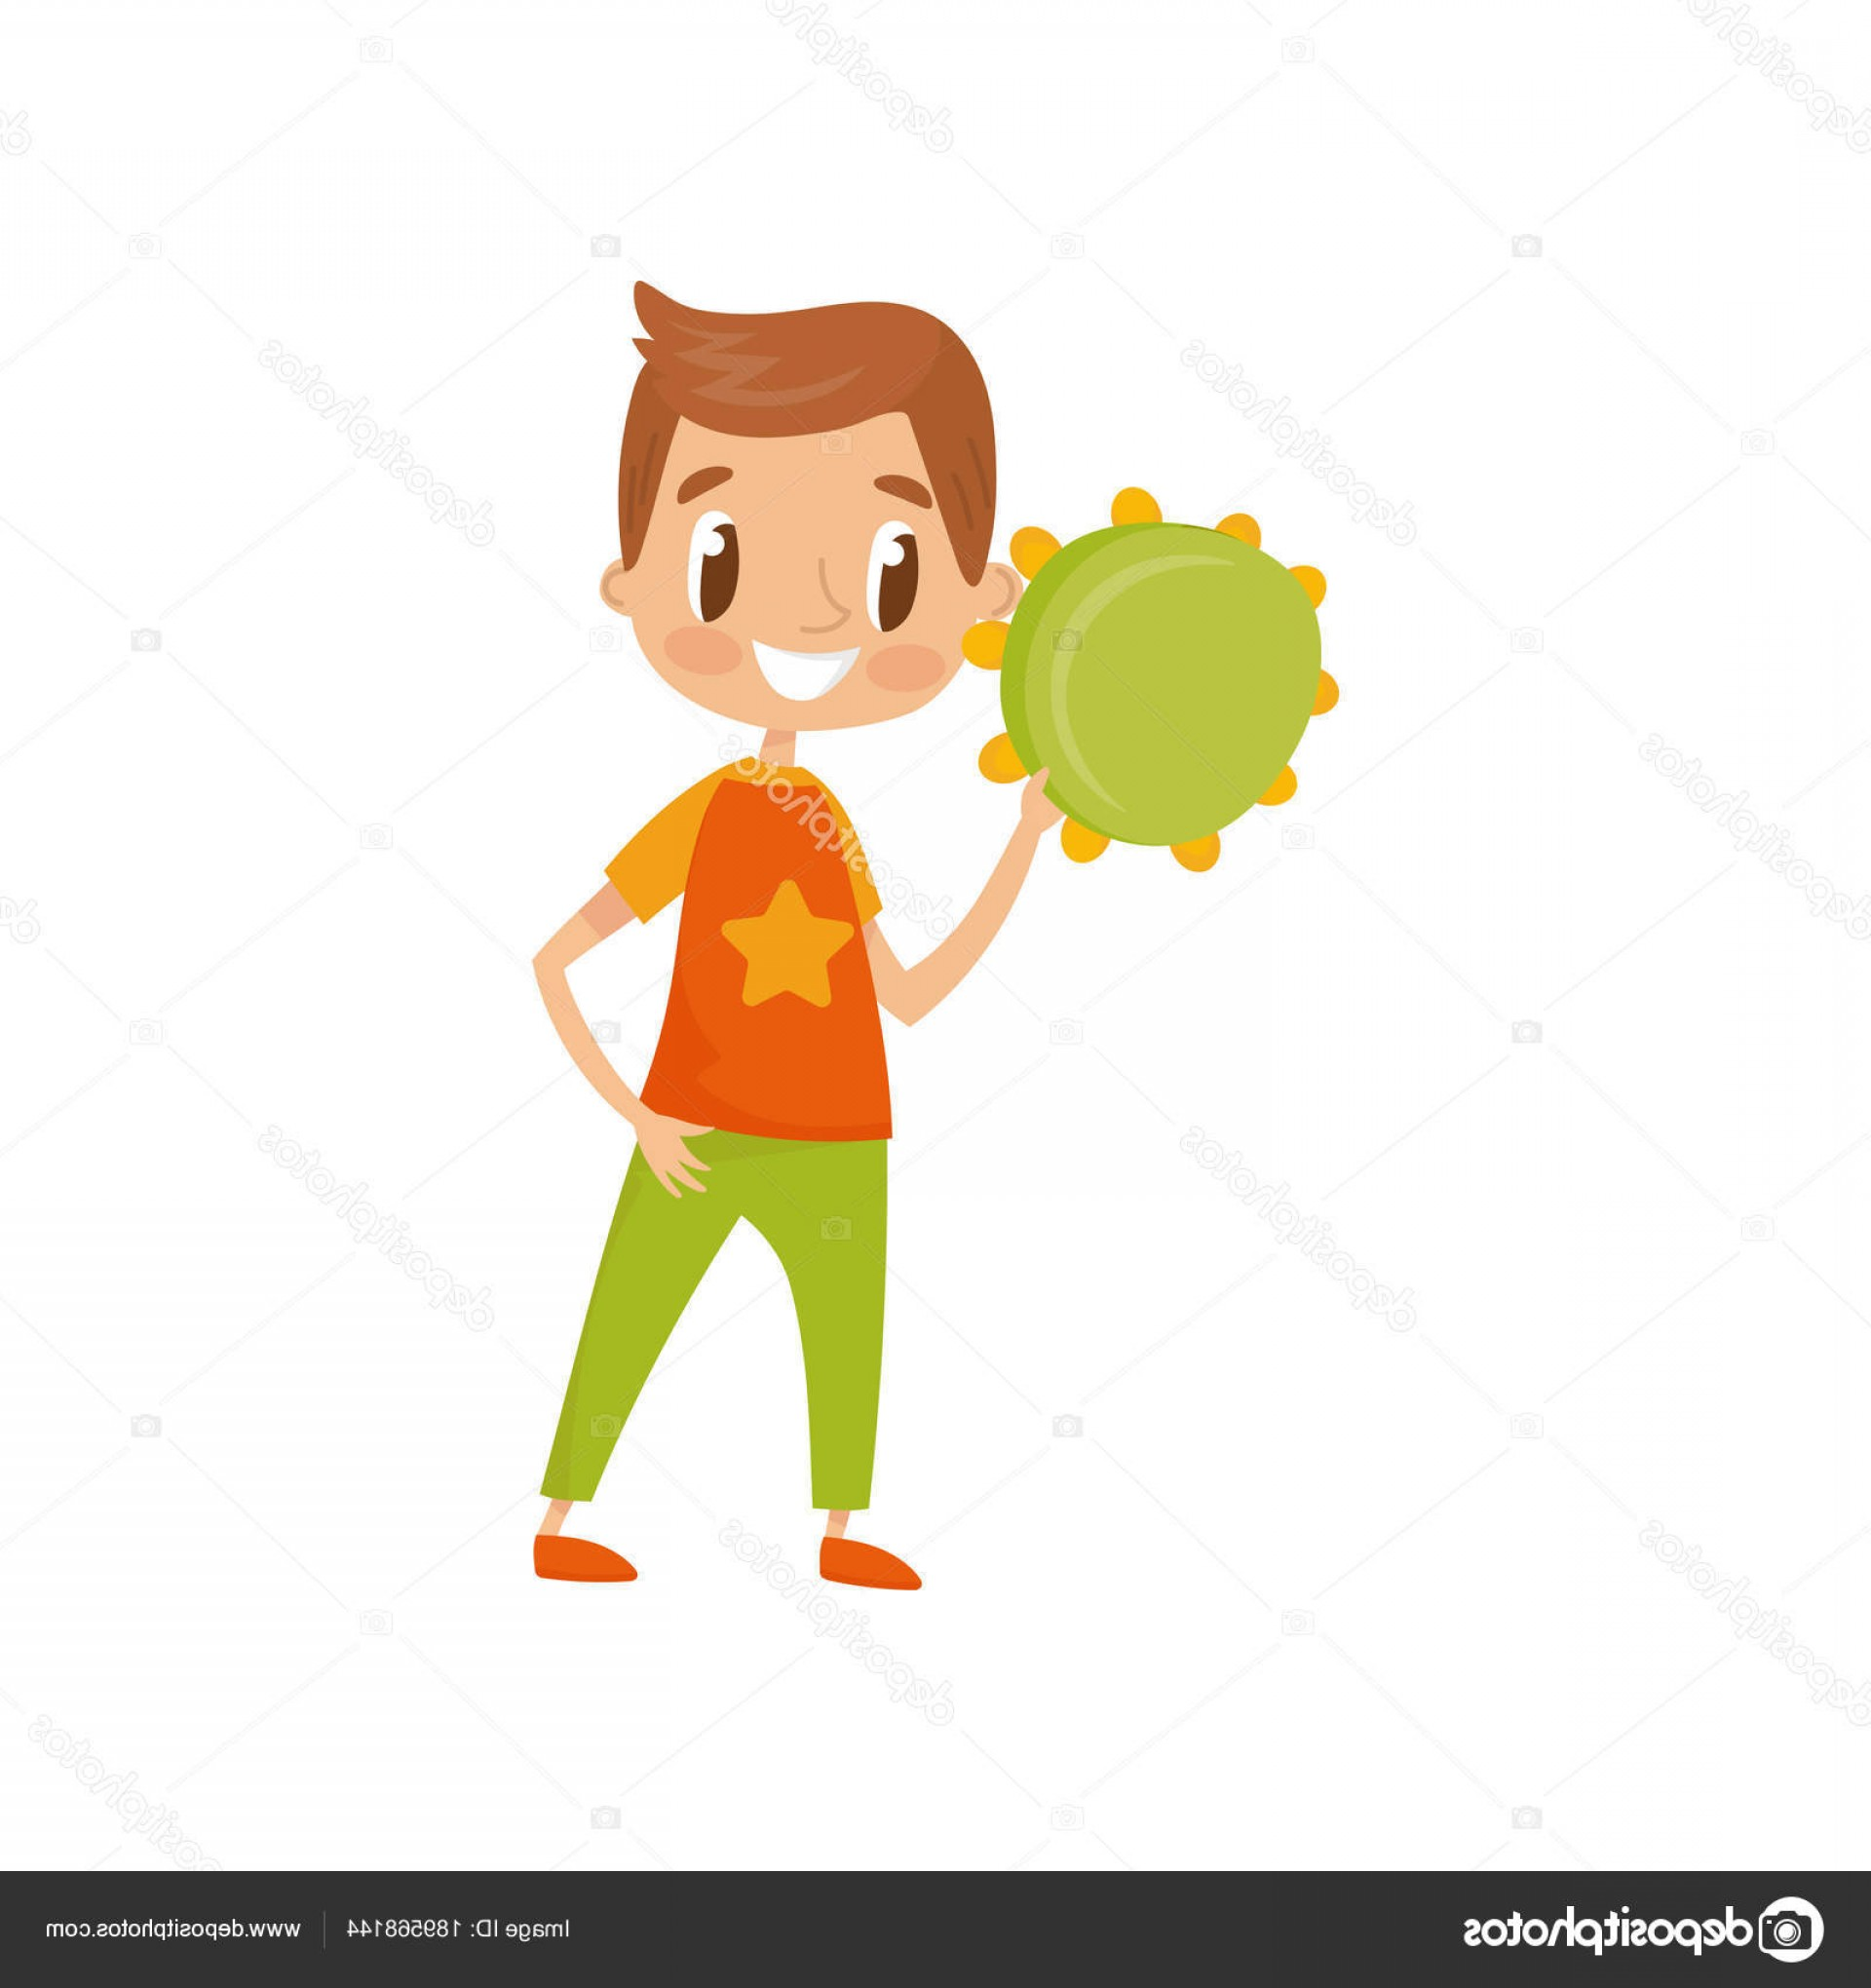 Musician Person Vector: Stock Illustration Boy Playing Tambourine Little Musician